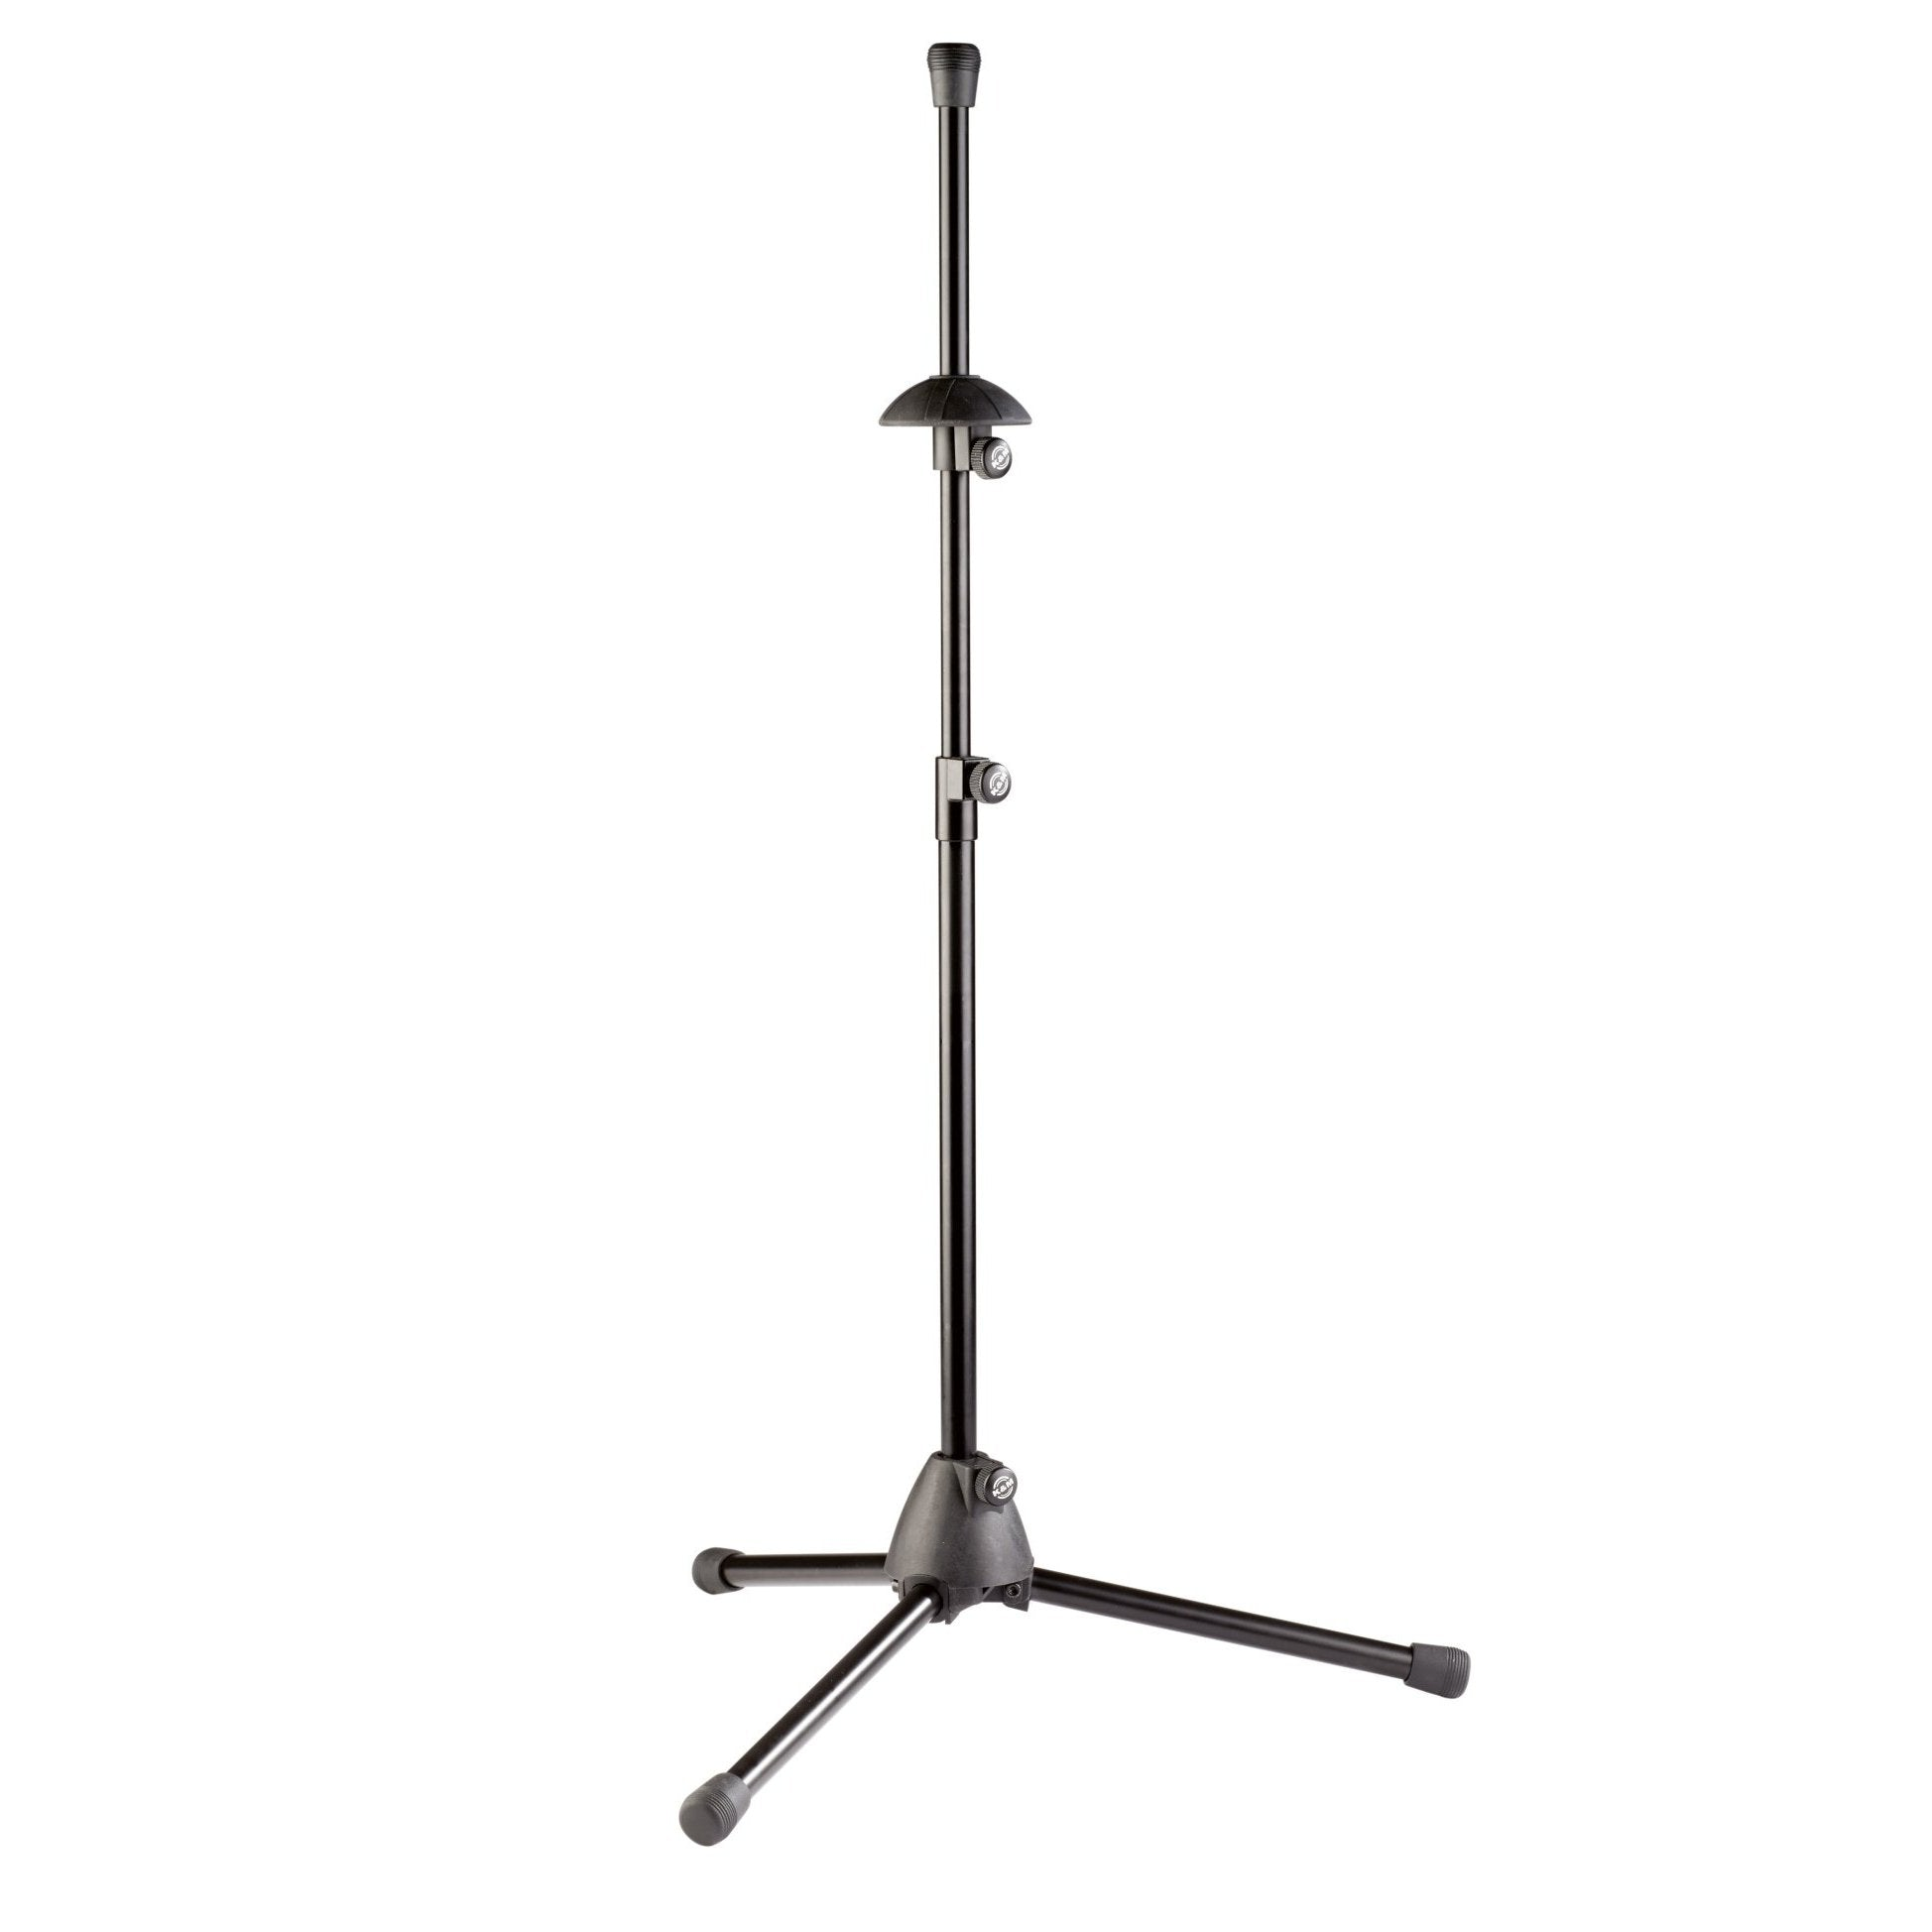 König & Meyer - 14985 Trombone Stand-Instrument Stand-König & Meyer-Music Elements